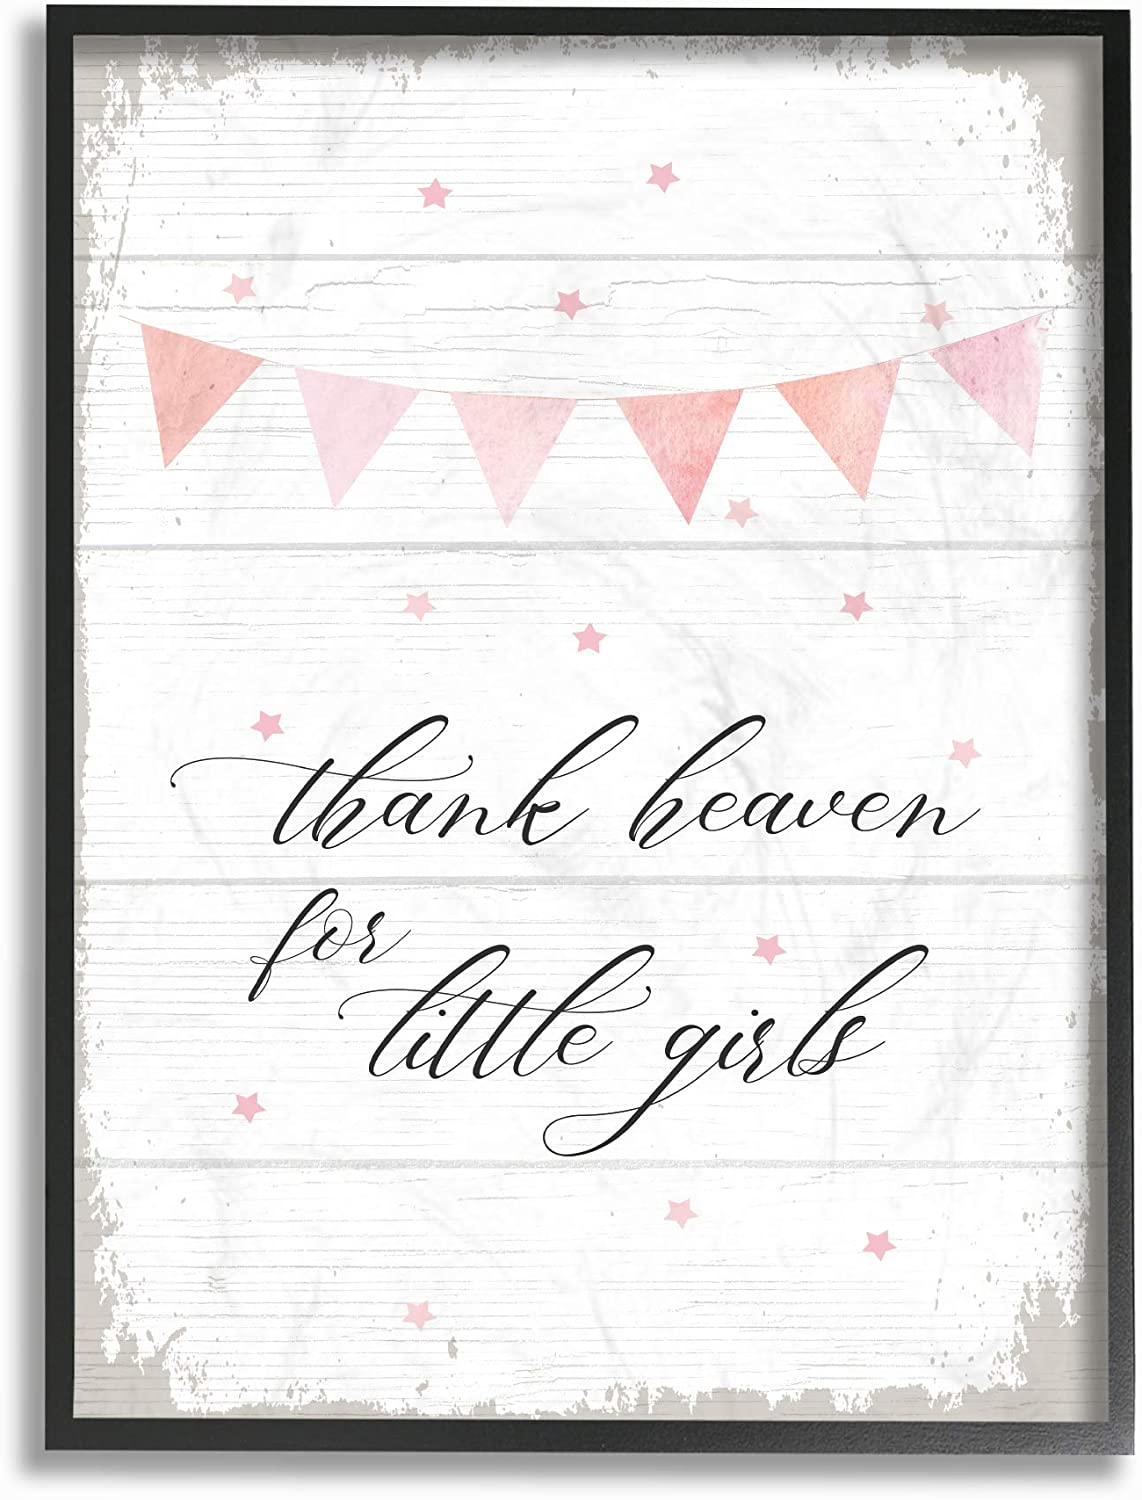 The Kids Room by Stupell Pink Bunting Thank Heaven for Little Girls Planked Look Framed Giclee Texturized Art, 11 X 14, Multicolor